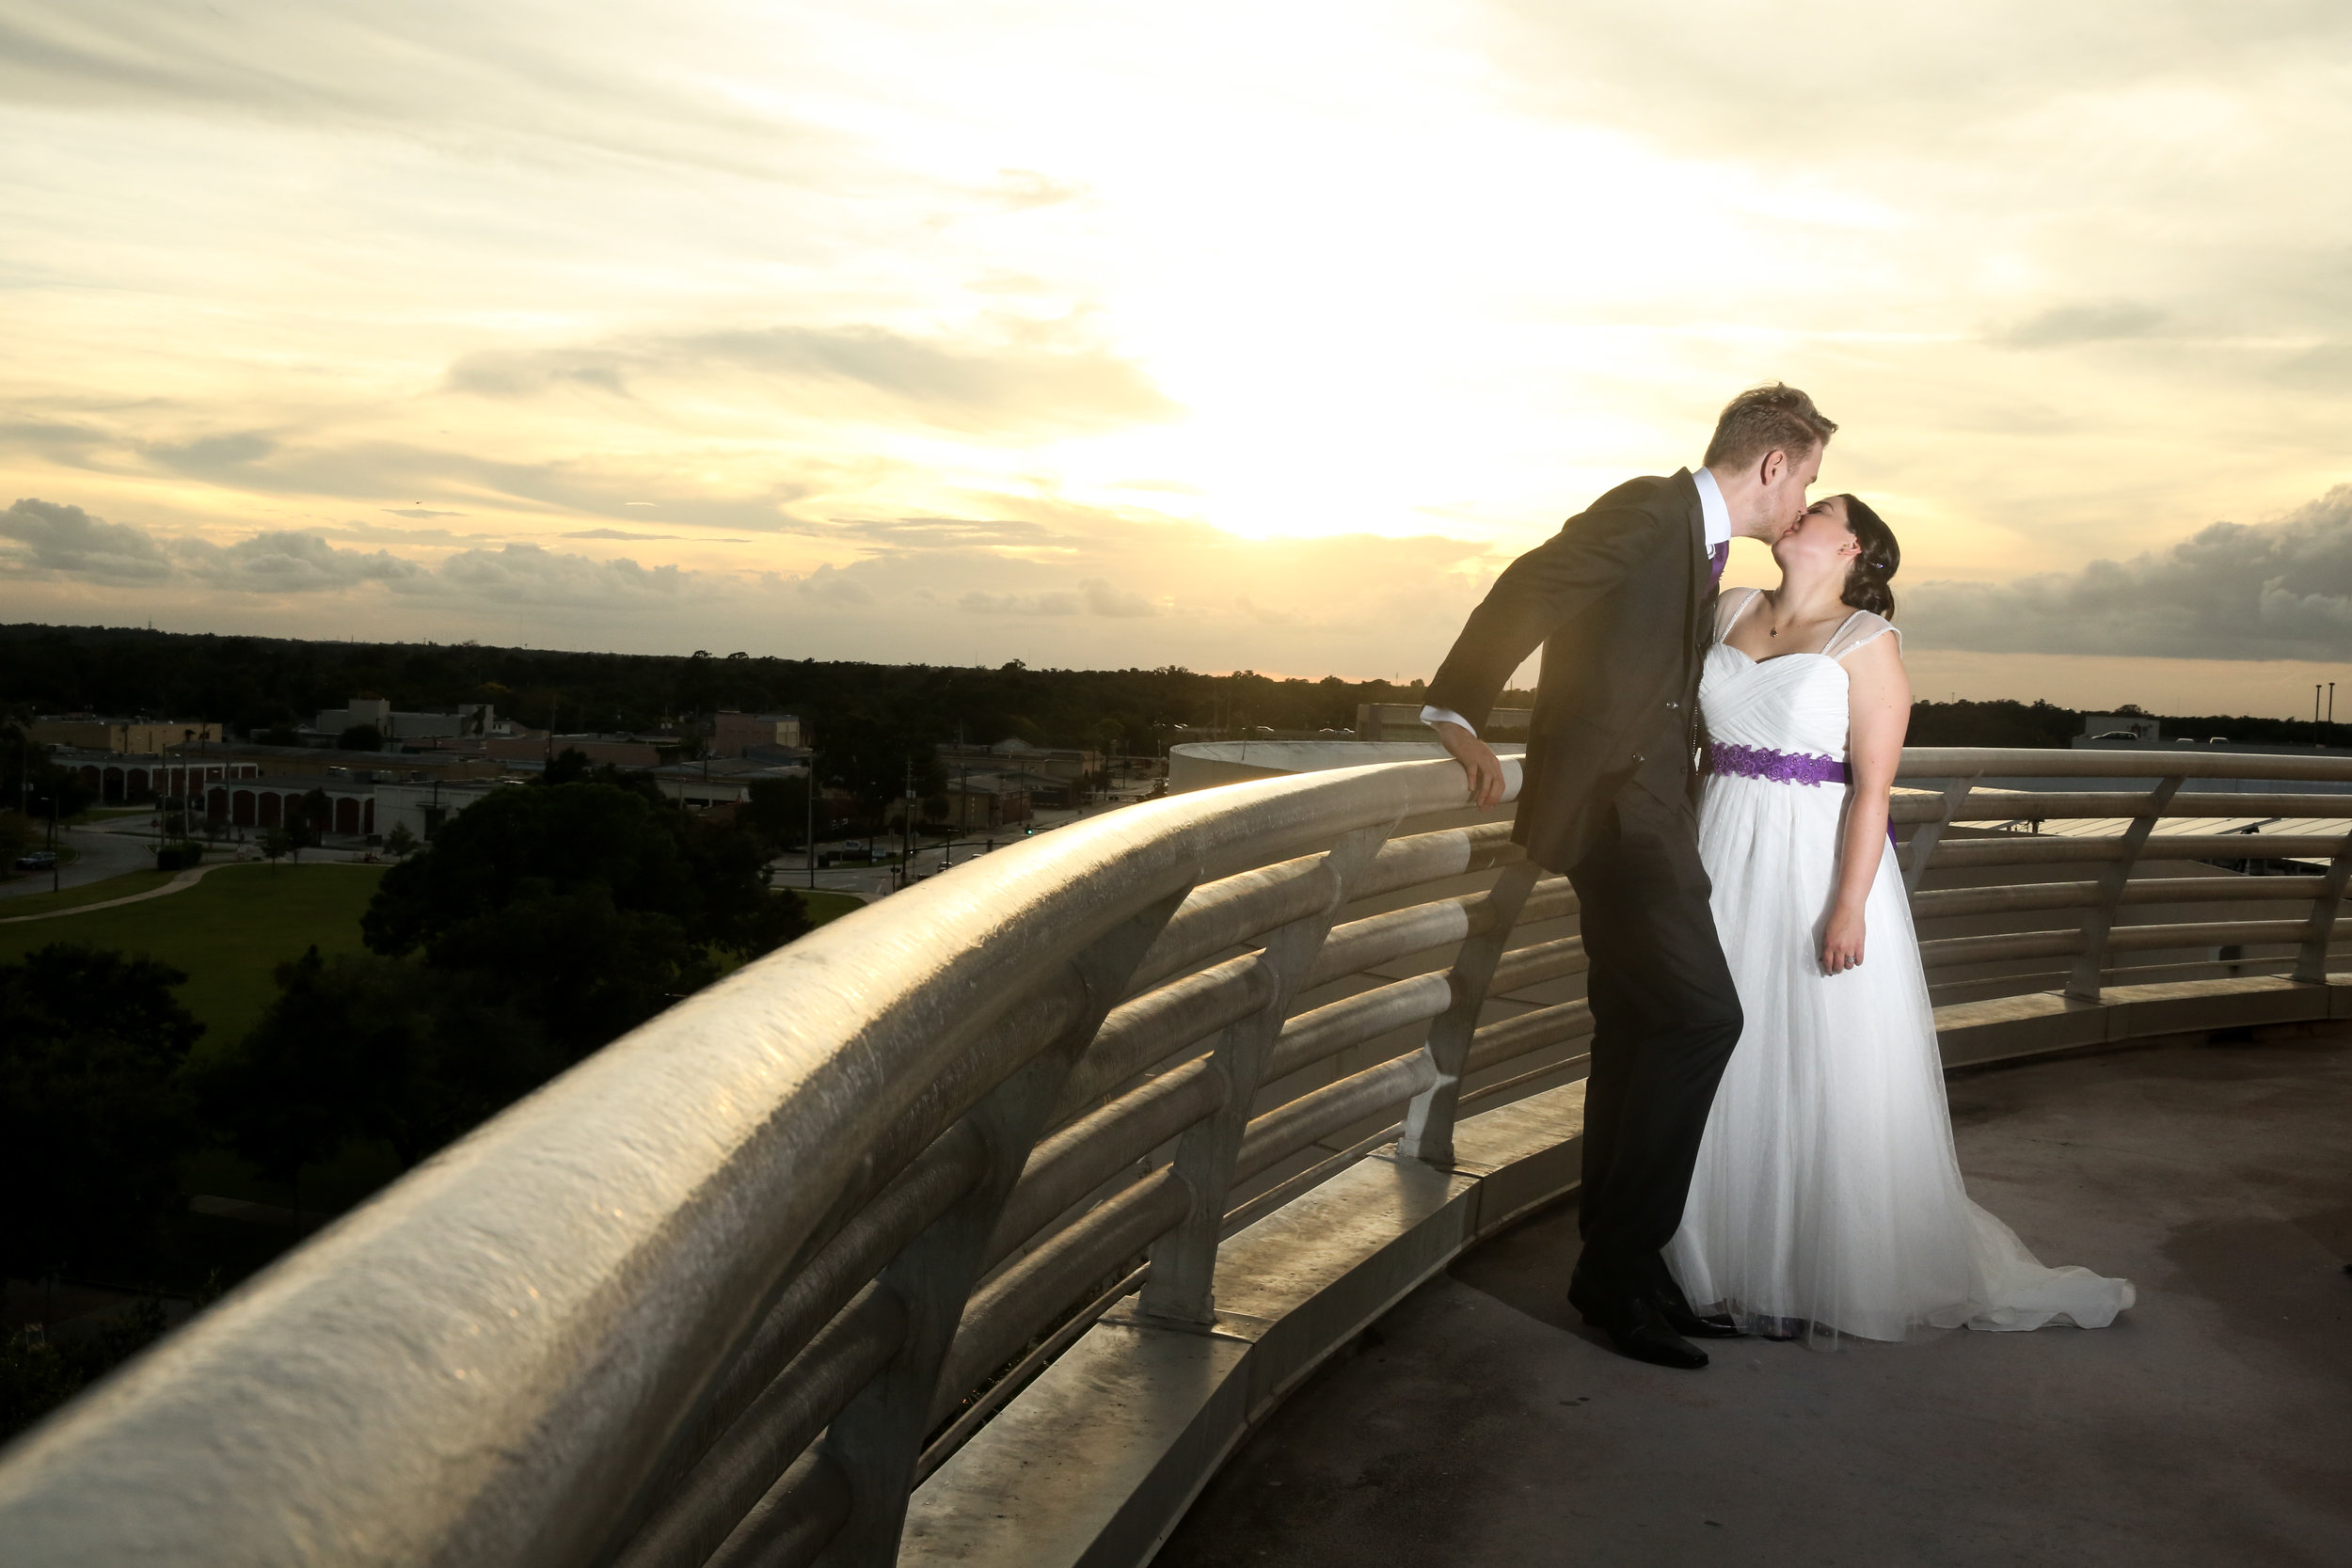 orlando-wedding-photographer-live-happy-studio-sunset.jpg